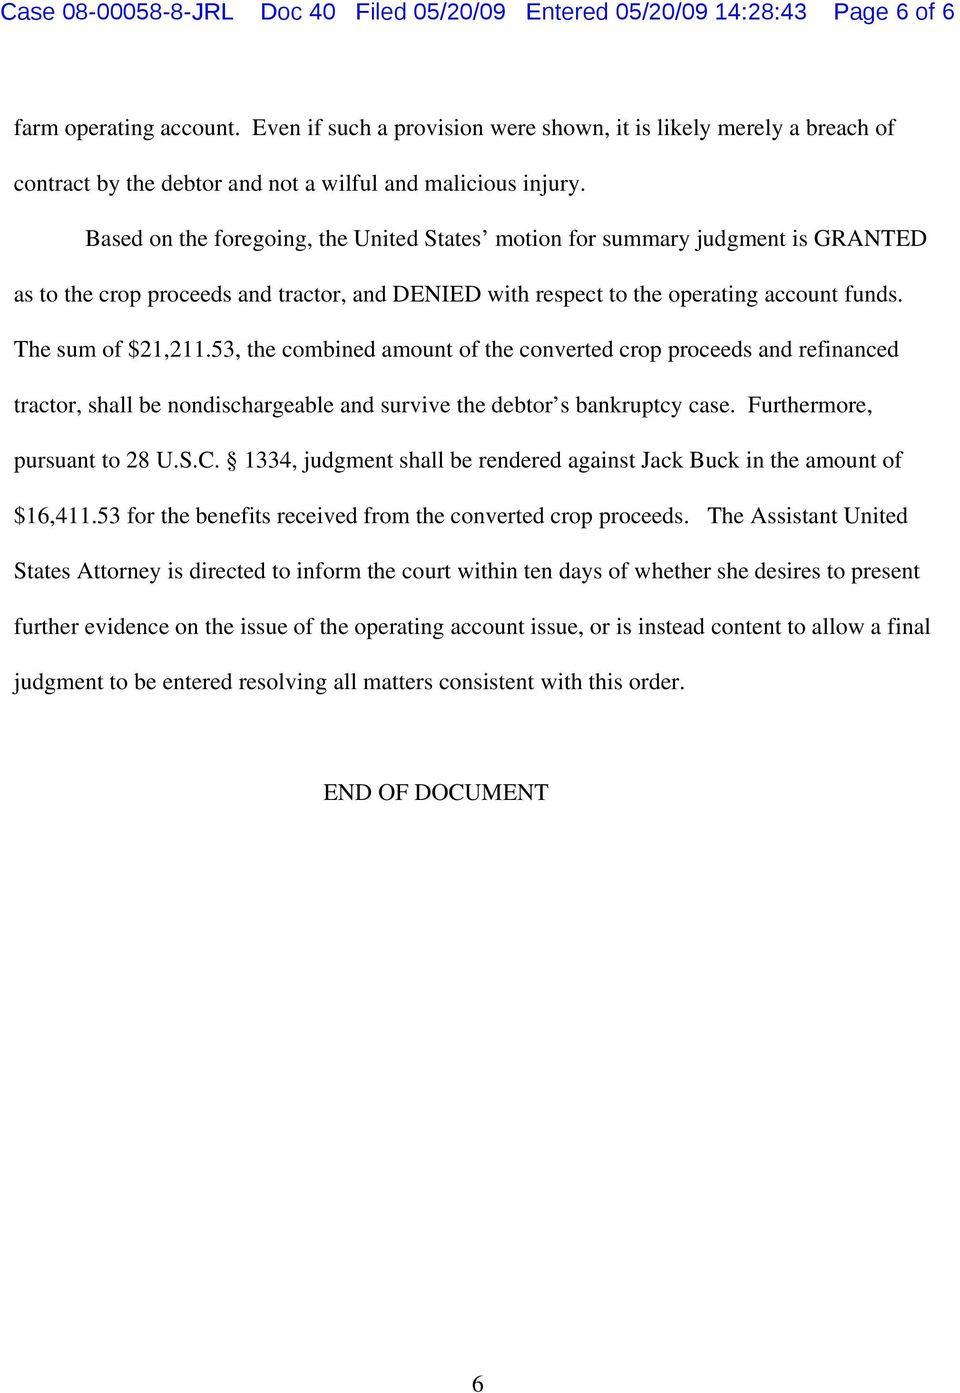 Based on the foregoing, the United States motion for summary judgment is GRANTED as to the crop proceeds and tractor, and DENIED with respect to the operating account funds. The sum of $21,211.